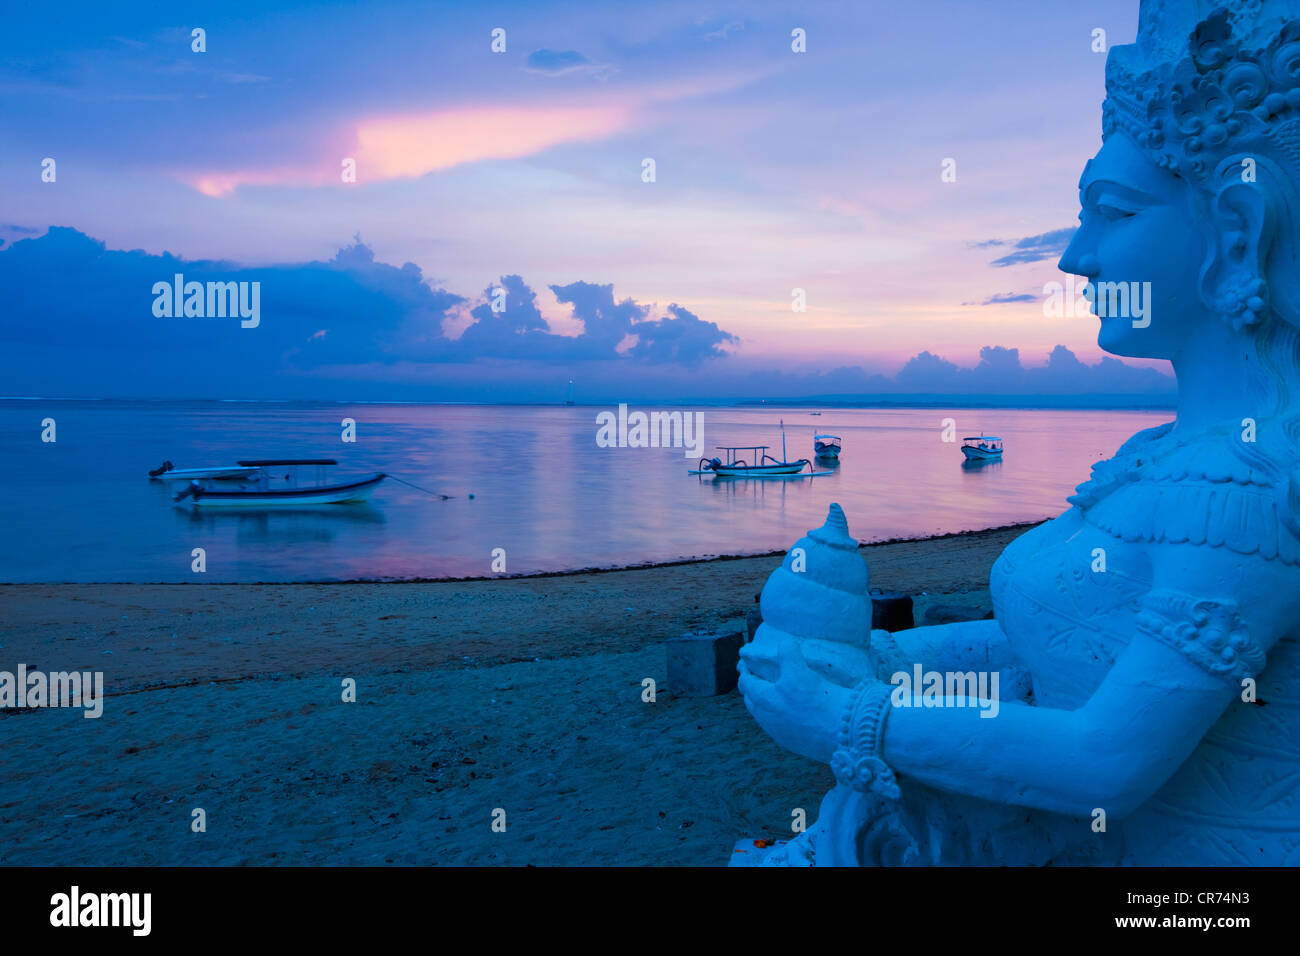 Indonesia, Bali, Sanur, Statue with sea in background at dusk Stock Foto